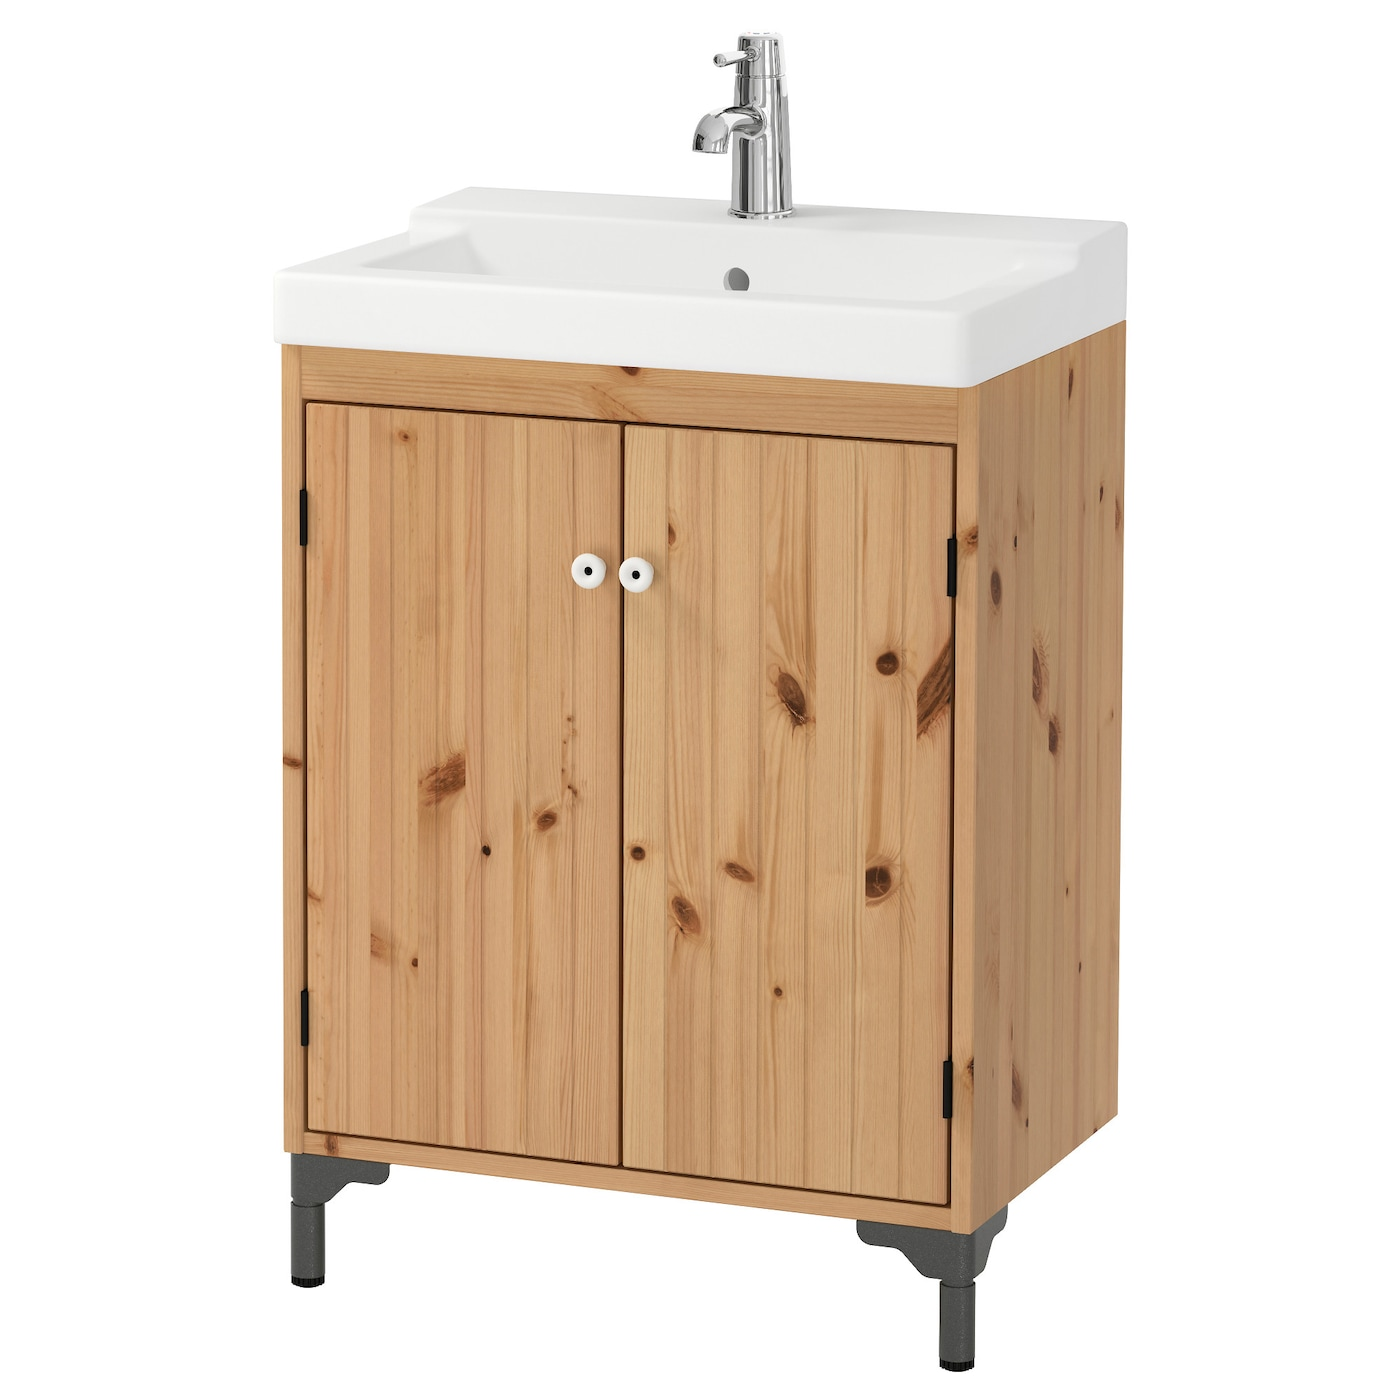 IKEA TÄLLEVIKEN/SILVERÅN wash-basin cabinet with 2 doors A good solution if you are short of space.